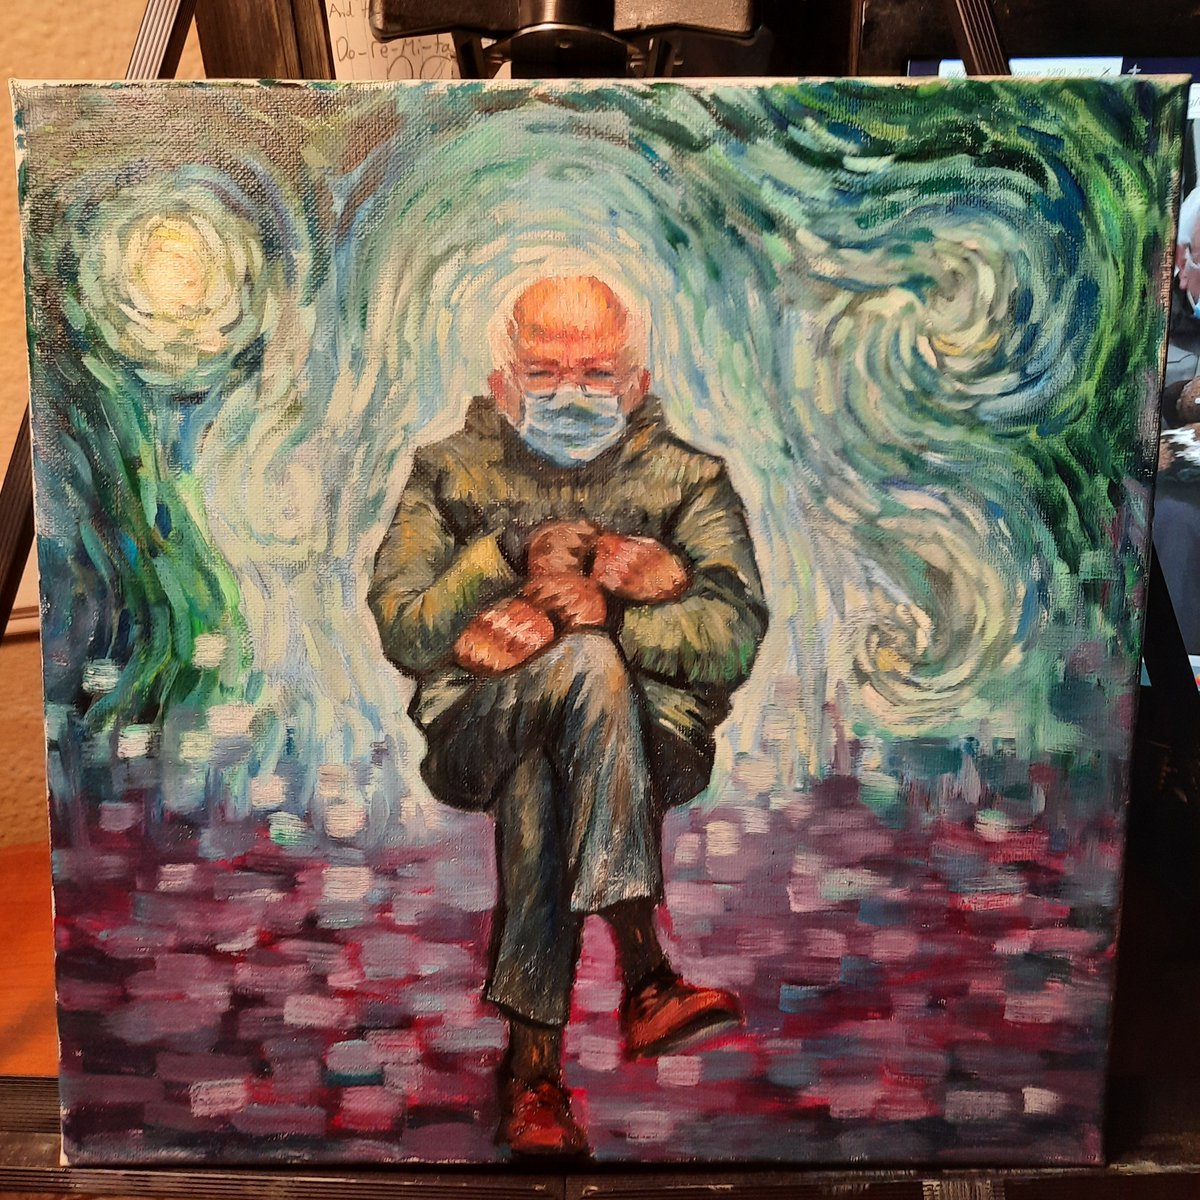 Finished up this #BernieSanders oil painting that I tried a #VanGogh style on. #oilpainting #painting #art #myart #Berniememes #Berniememe  Already sold it to a mutual friend too Ahhhhh. Makes me wanma do more paintings. It was fun.